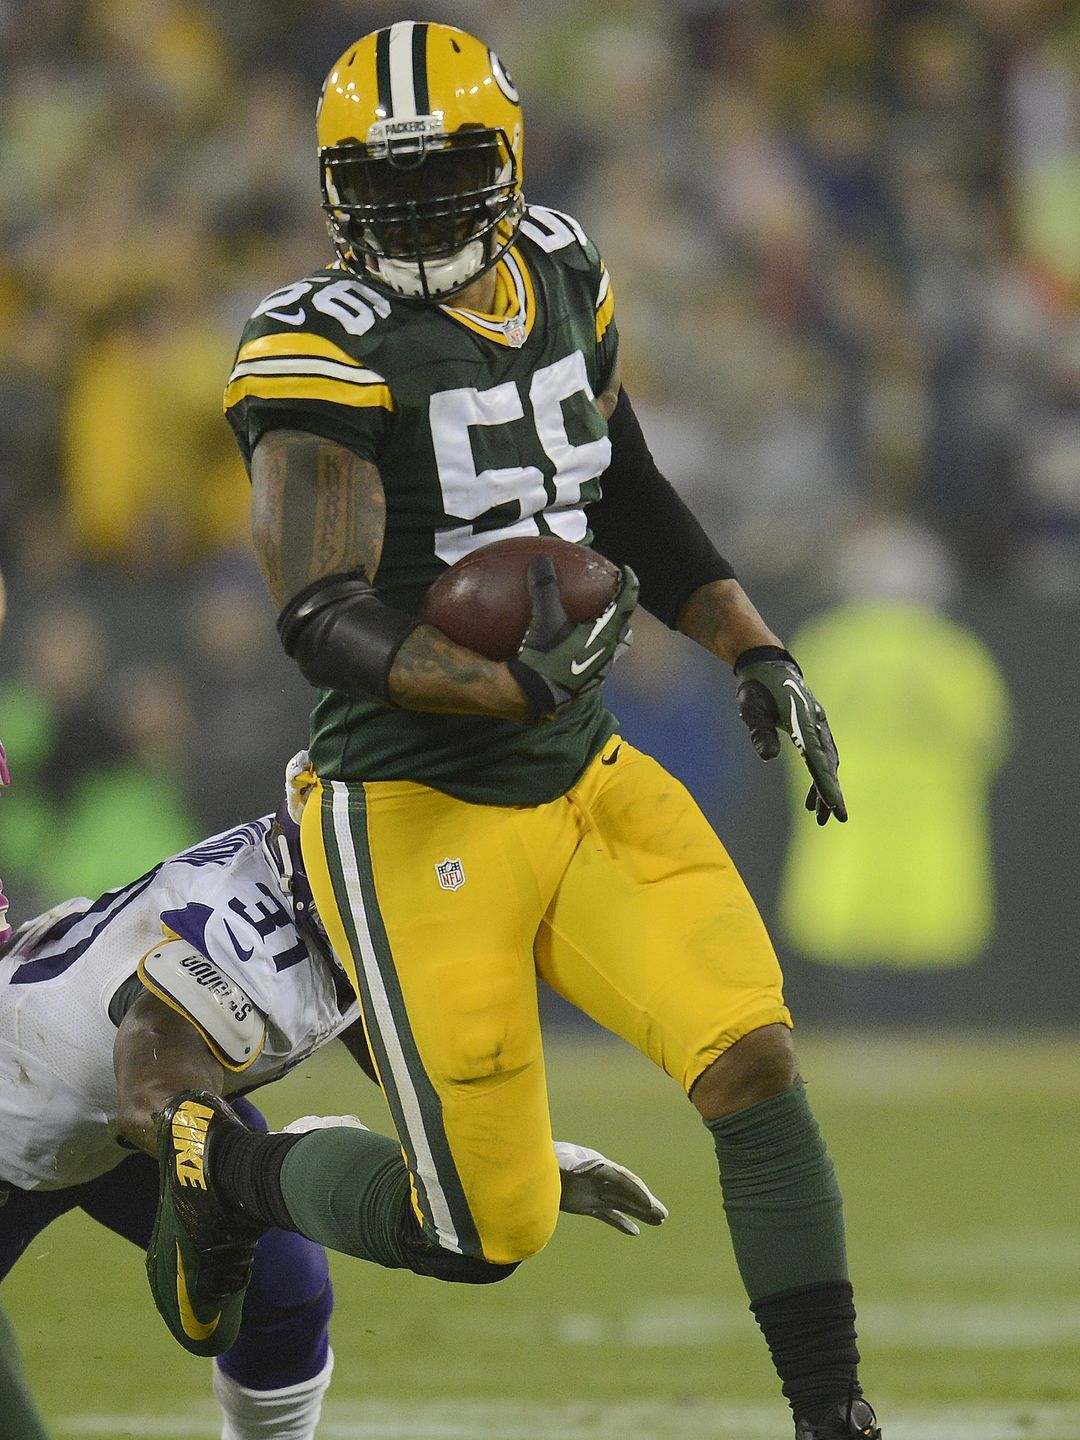 Week 5 Green Bay Packers 42 Minnesota Vikings 10 Green Bay Packers Nfl Green Bay Green Bay